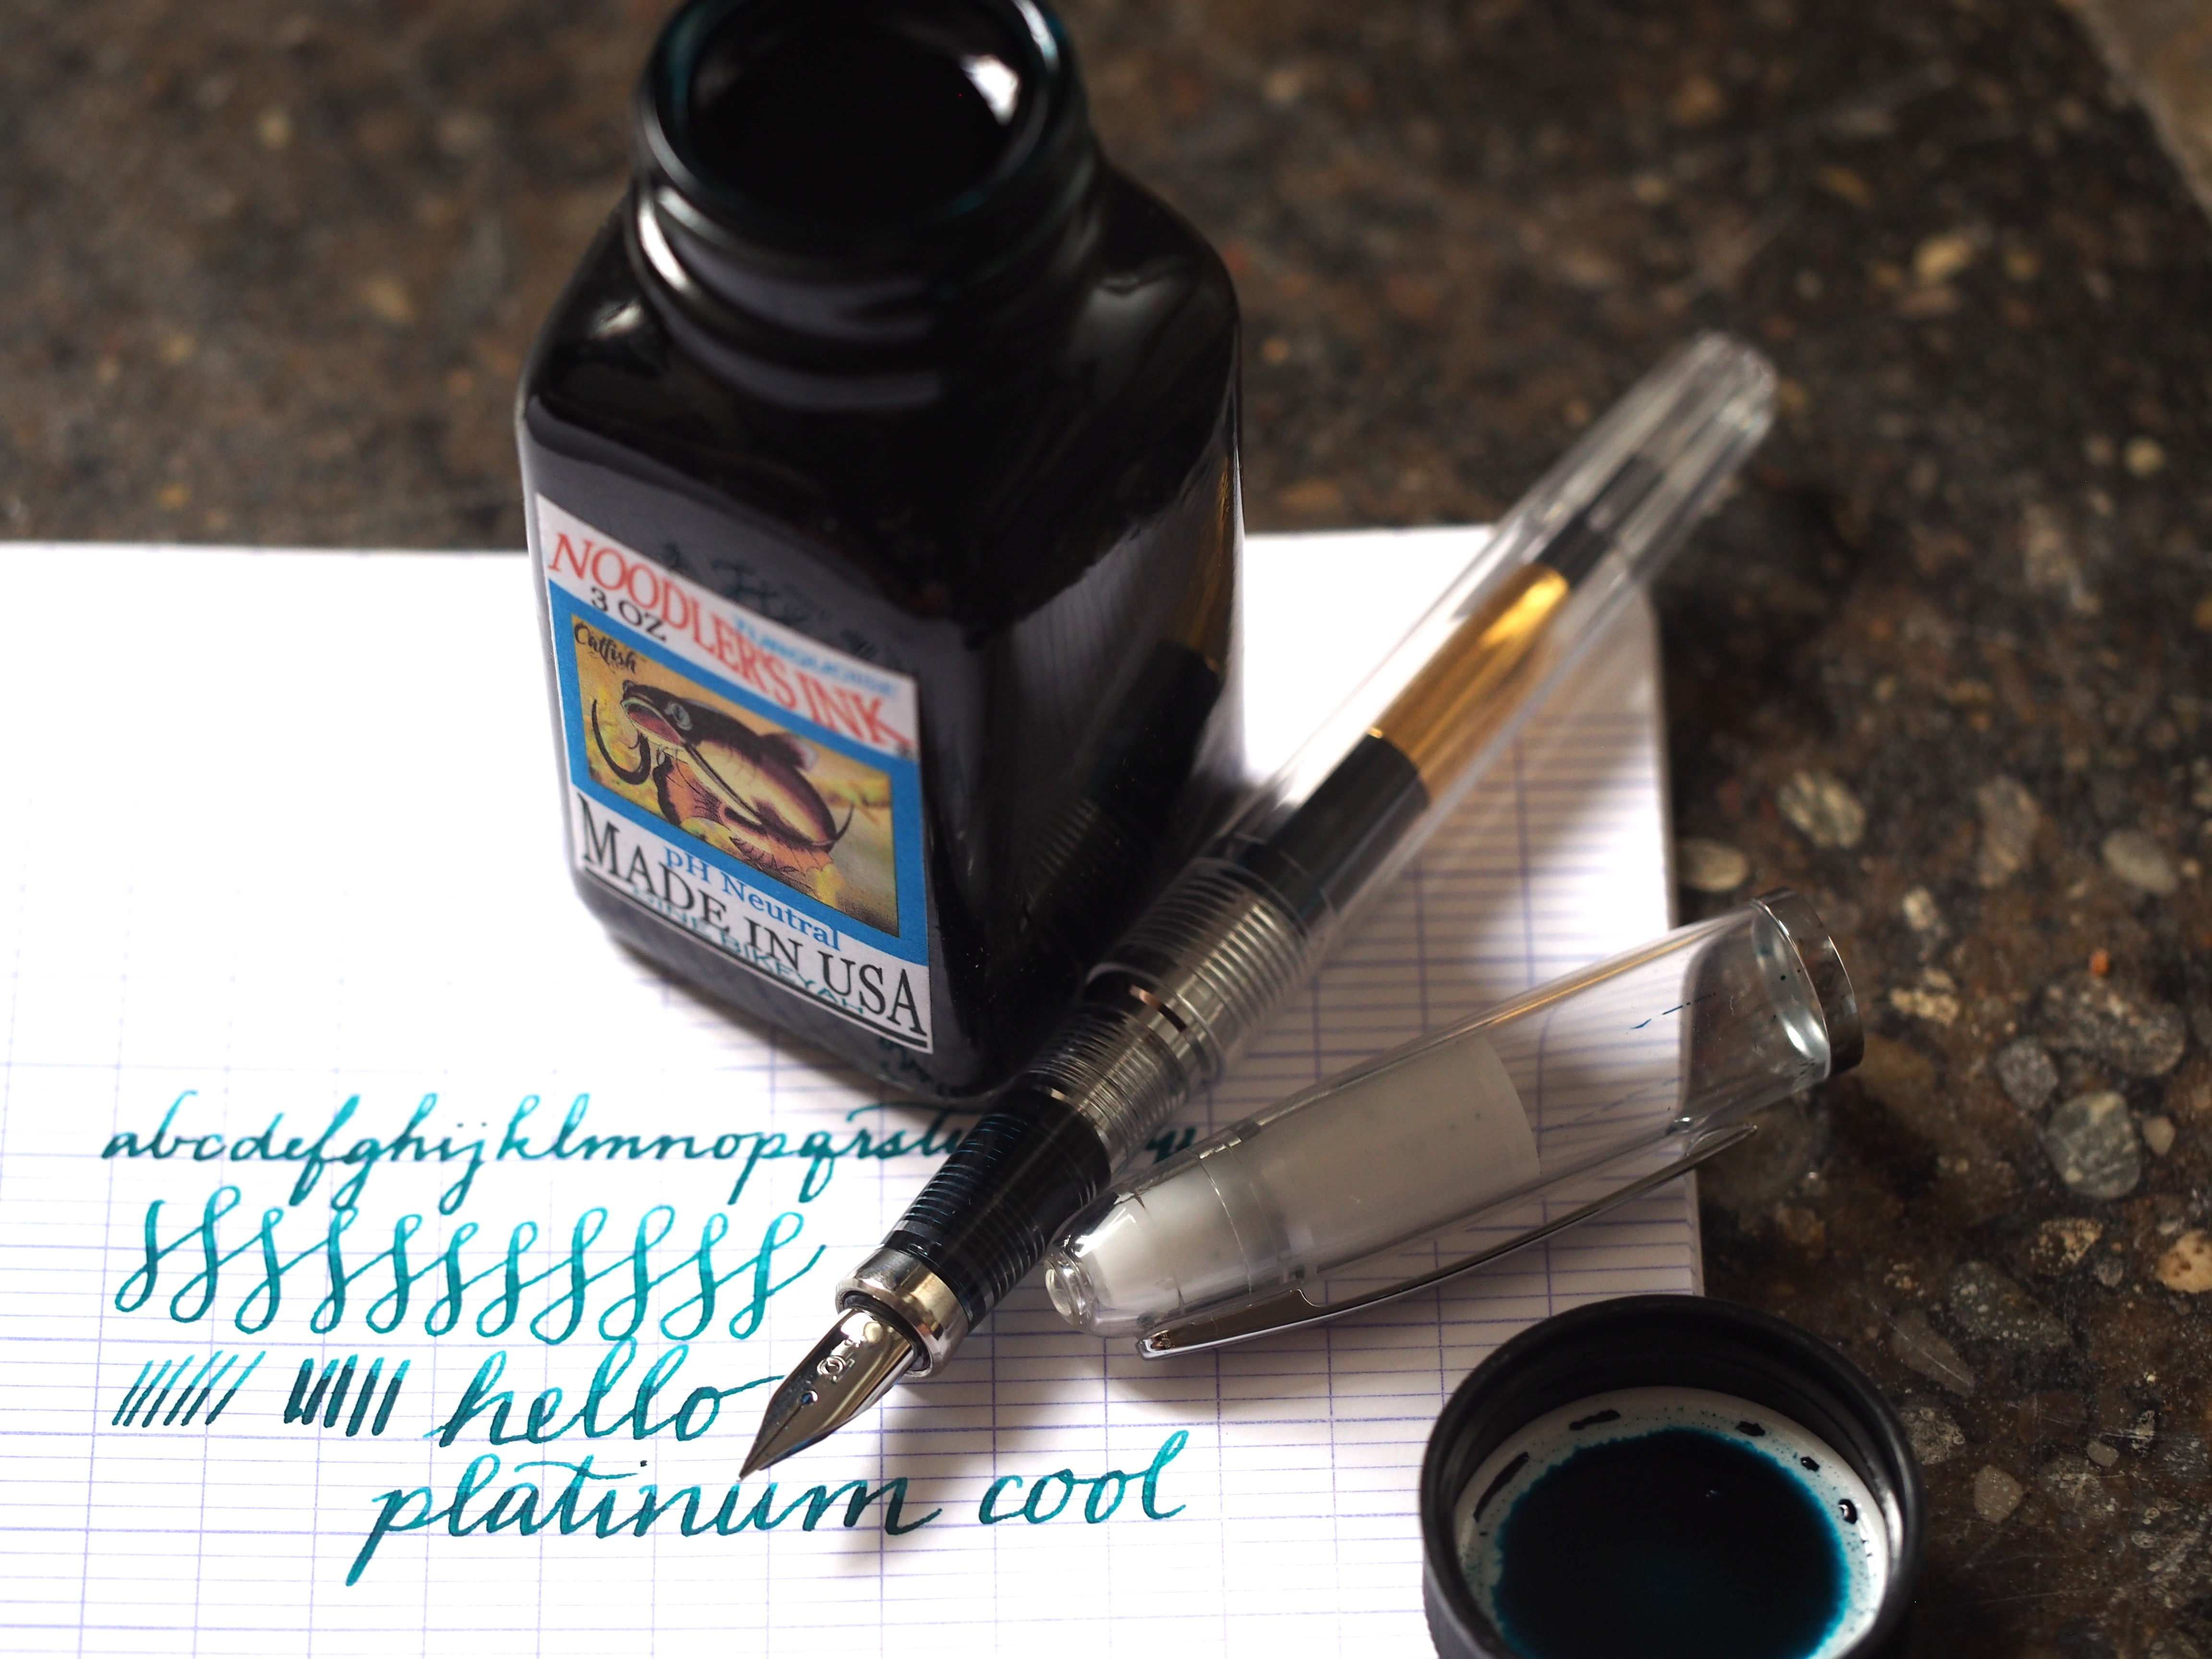 platinum cool fountain pen wonder pens life behind a stationery shop